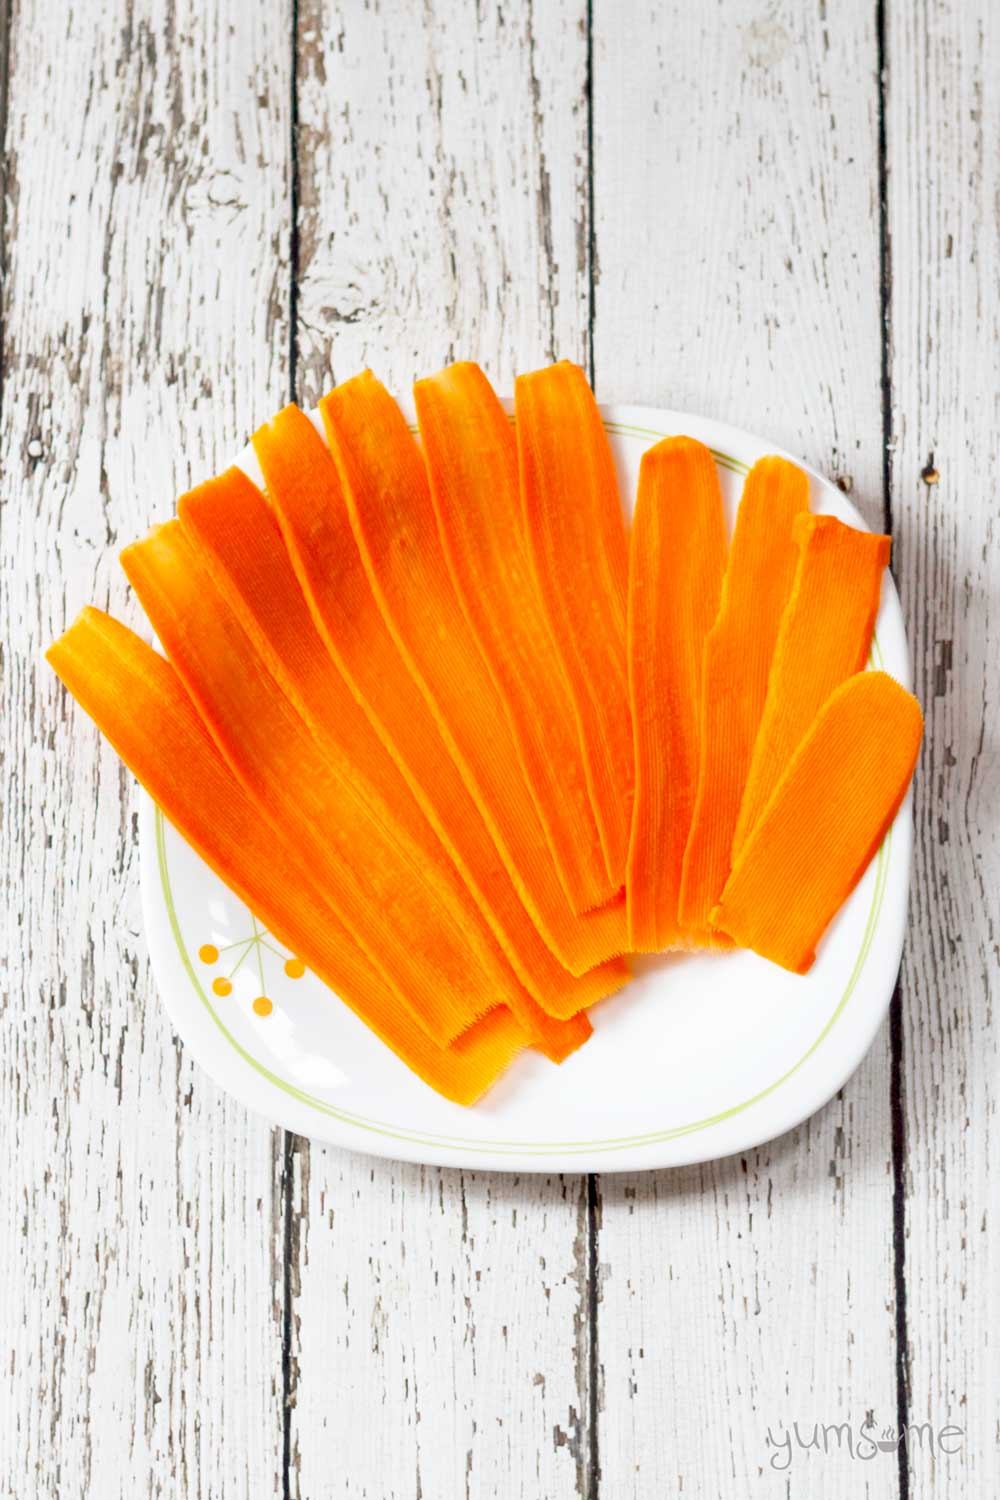 a plate of raw carrot slices | yumsome.com